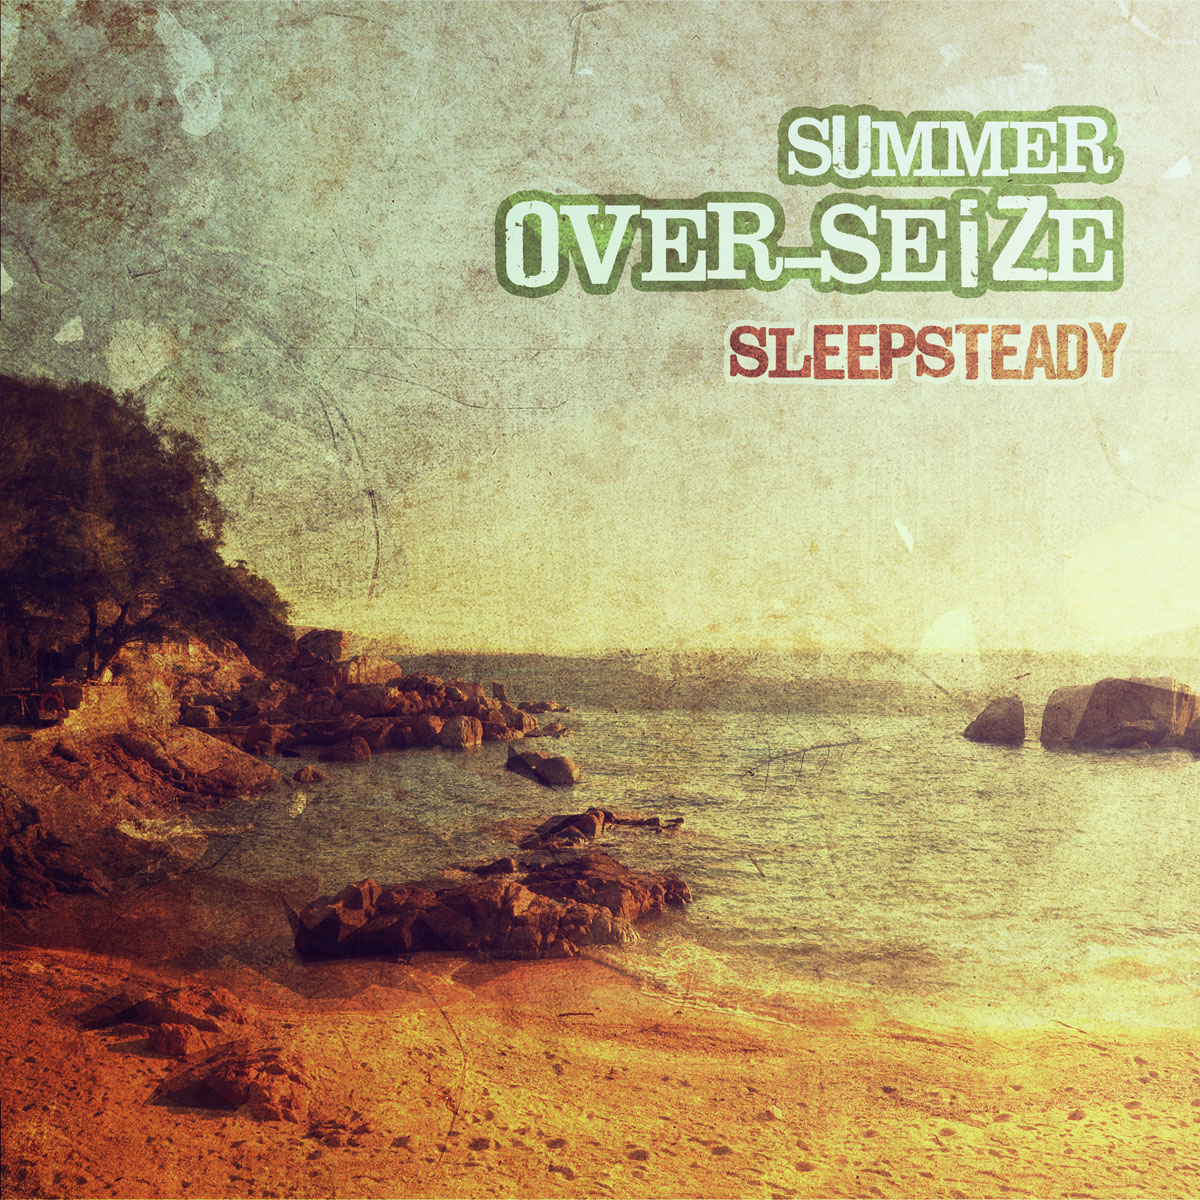 Interview: Sleep Steady